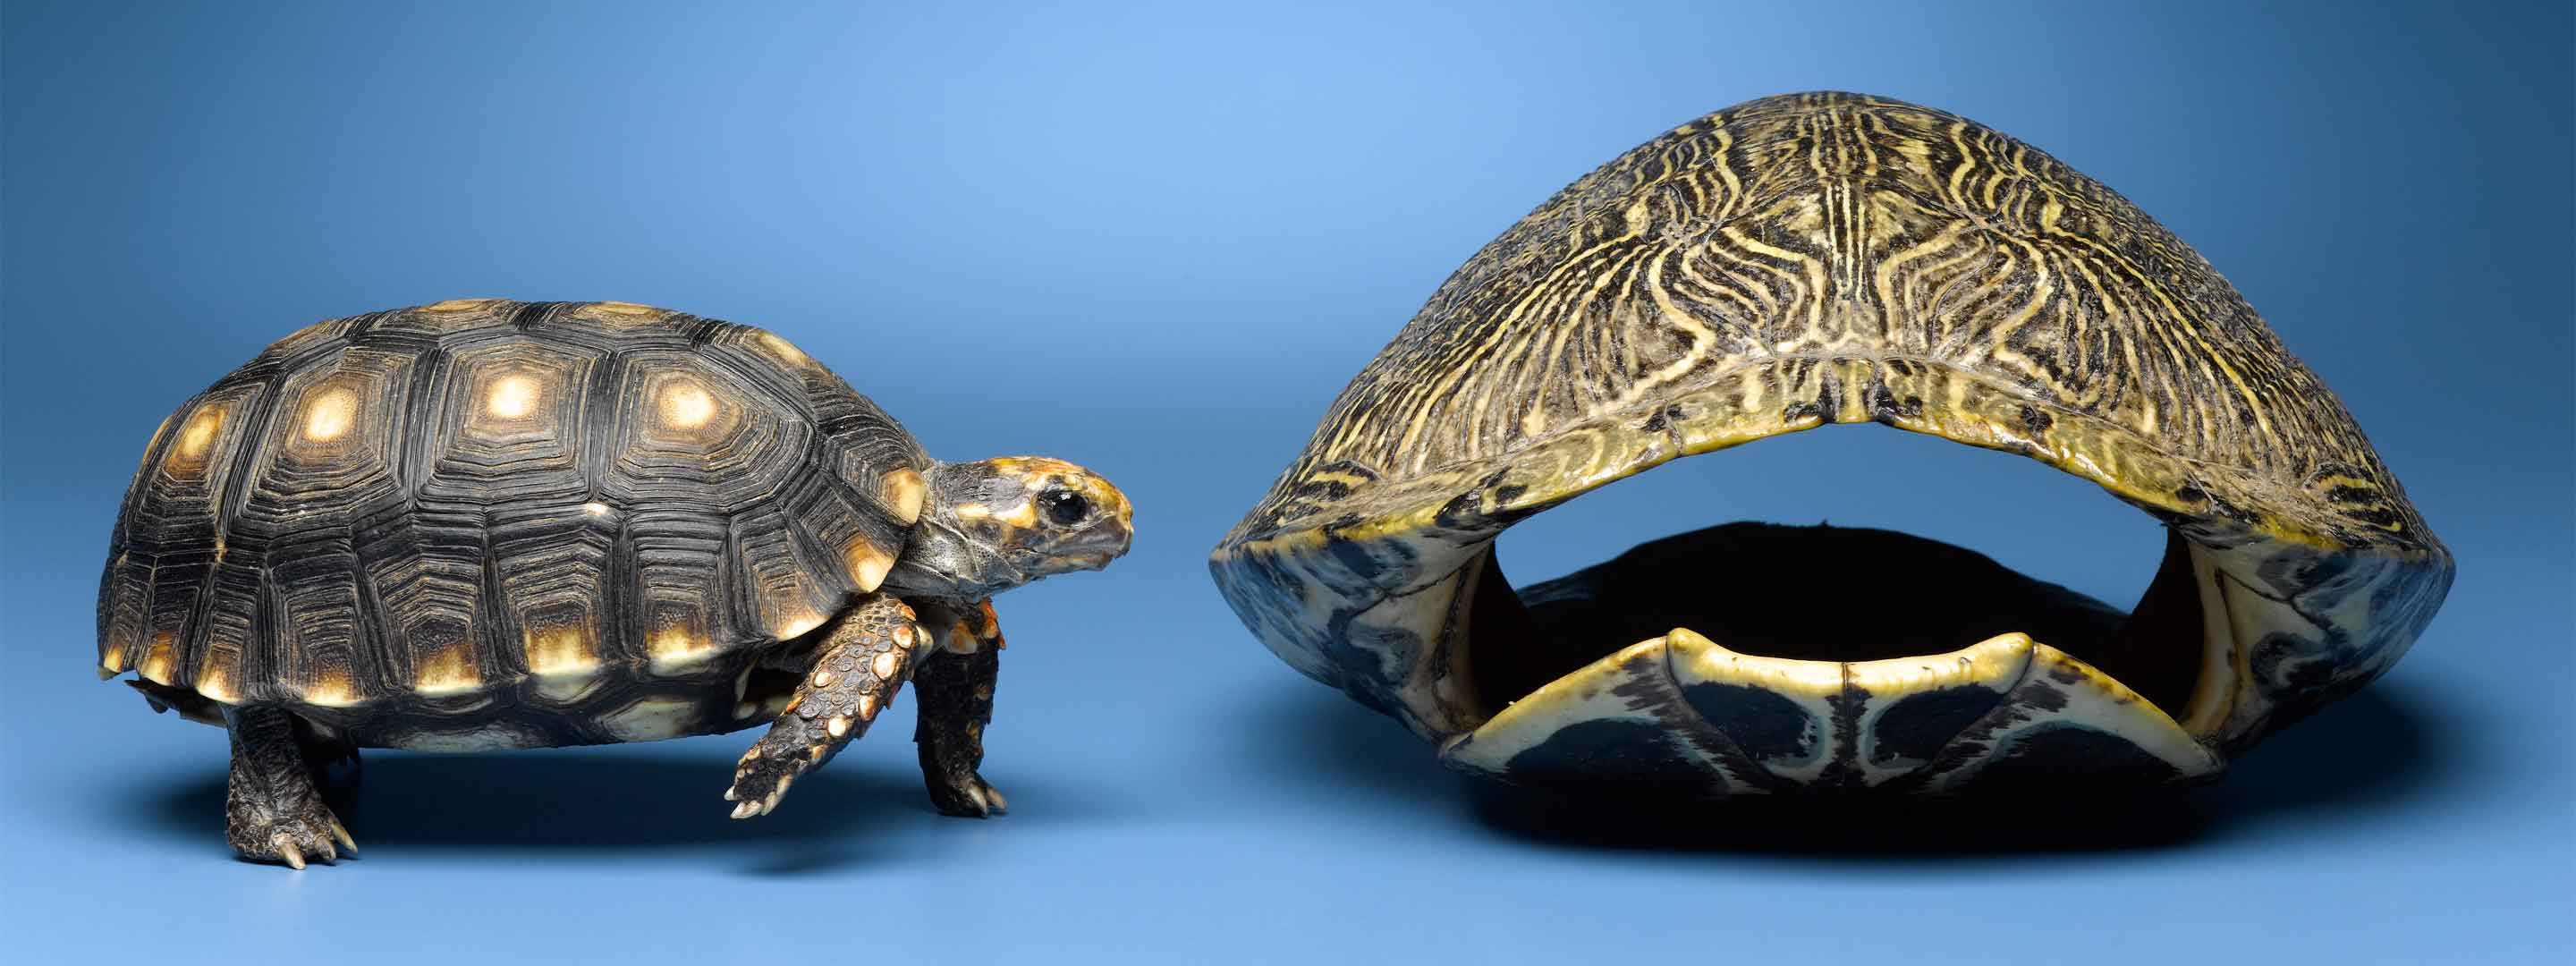 turtle and shell